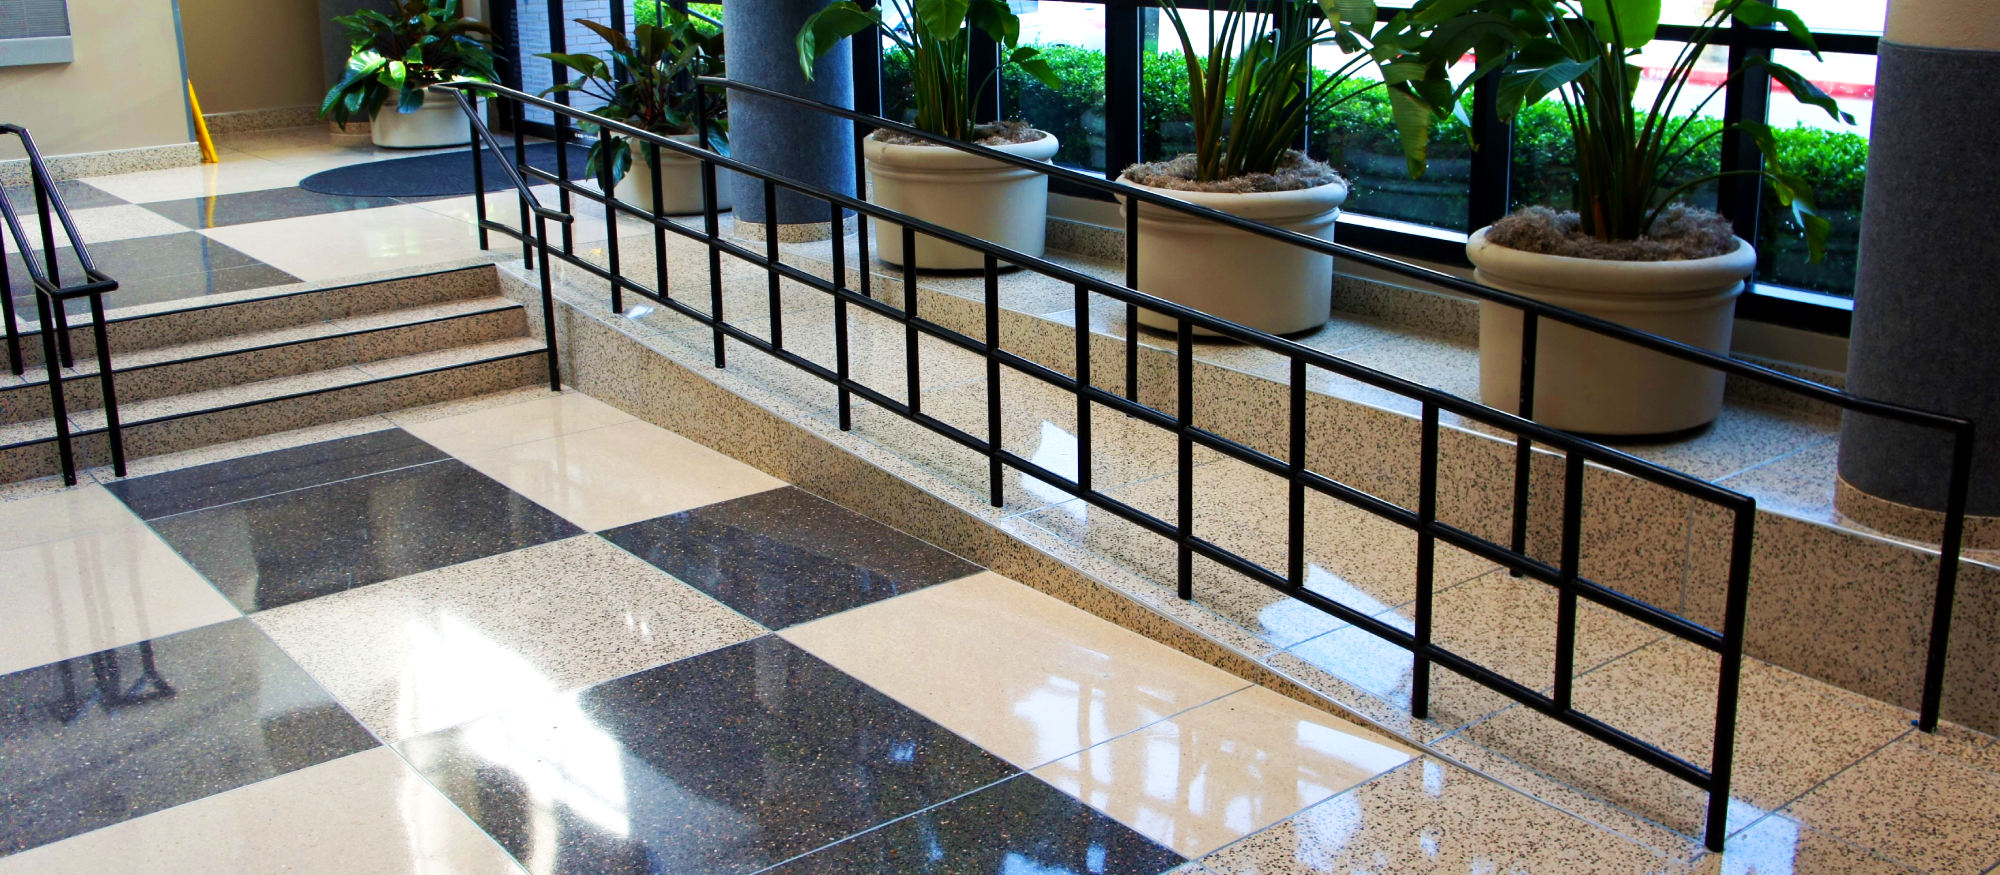 Our Projects Authentic Terrazzo Flooring Installations